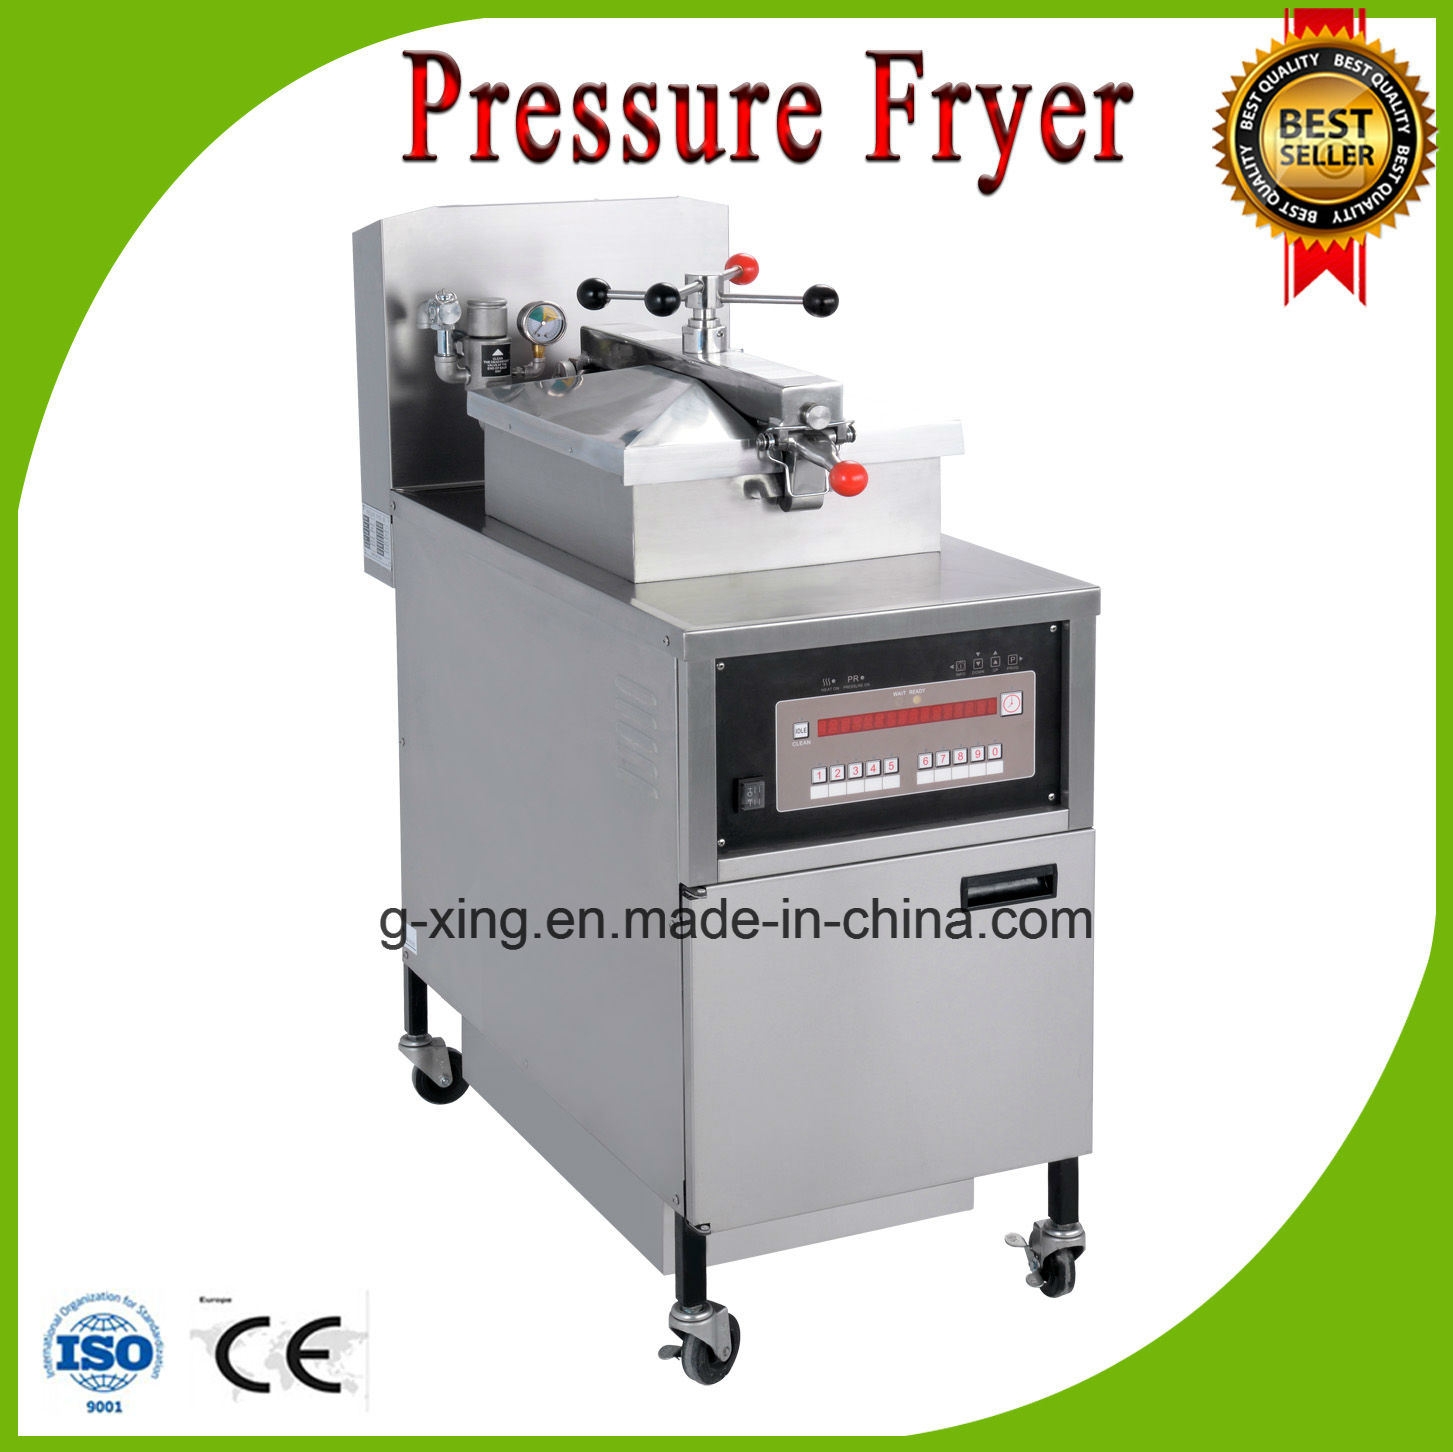 Pfg800 Kfc Chicken Pressure Fryer